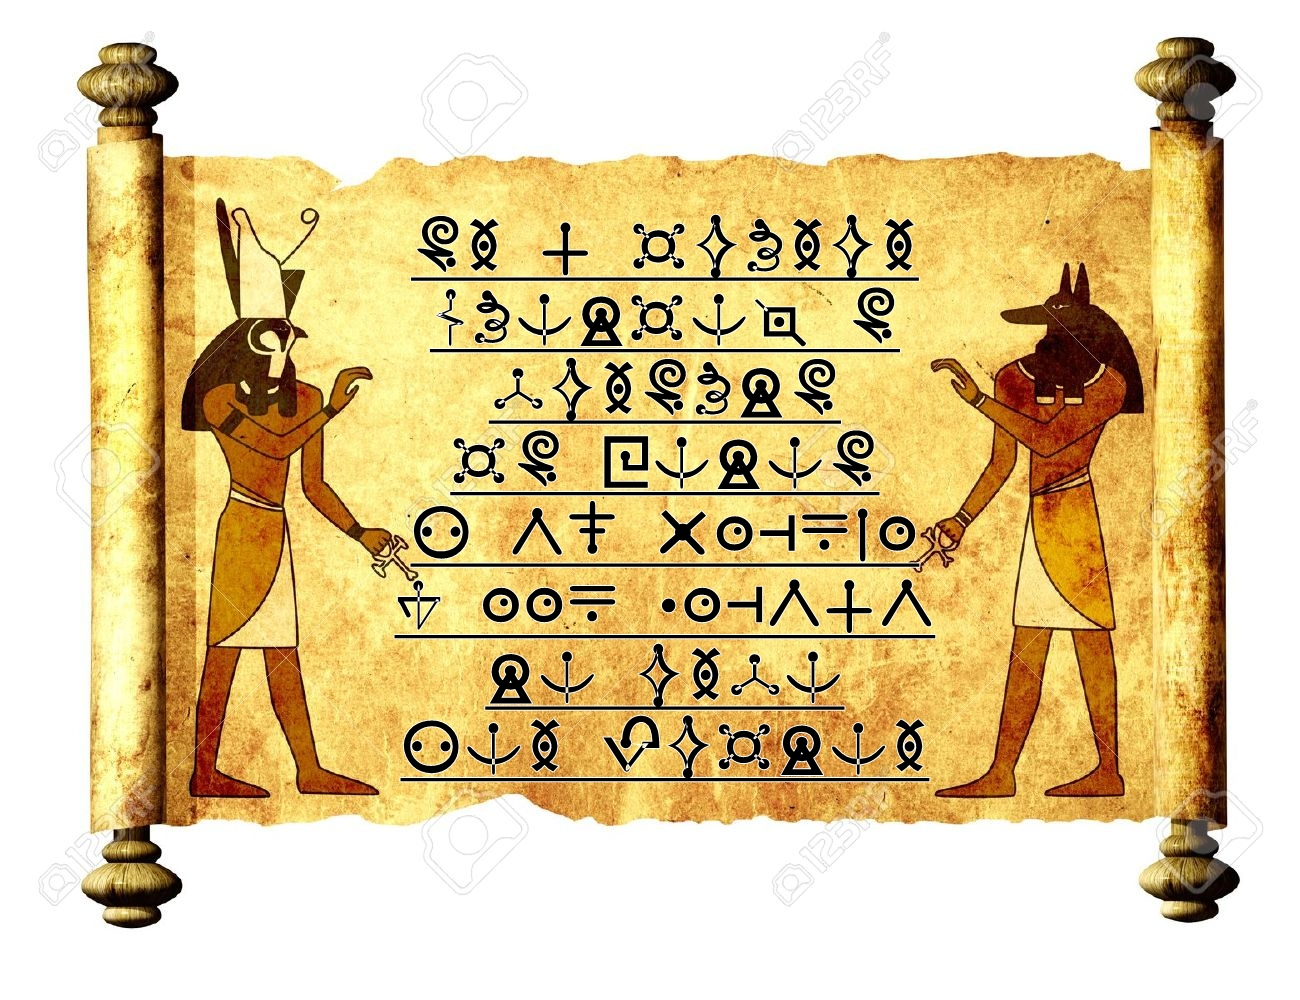 8948560-Background-with-Egyptian-gods-images-Anubis-and-Horus-Stock-Photo.jpg